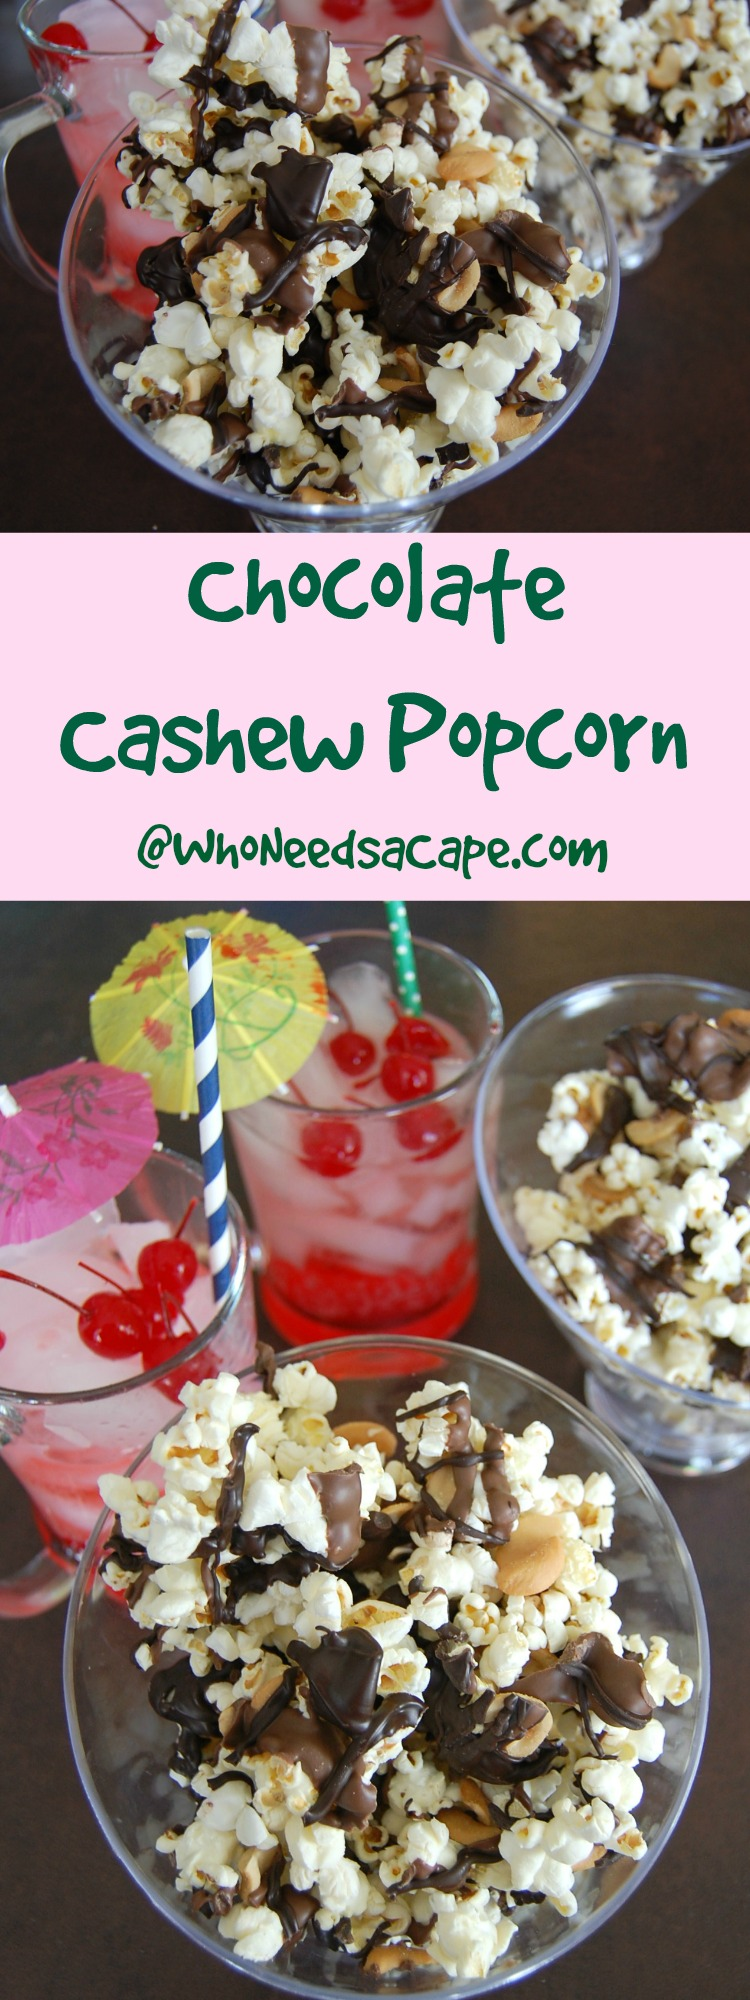 Chocolate Cashew Popcorn is a snack you can have ready in minutes for a family movie or game night. So good a must pin!